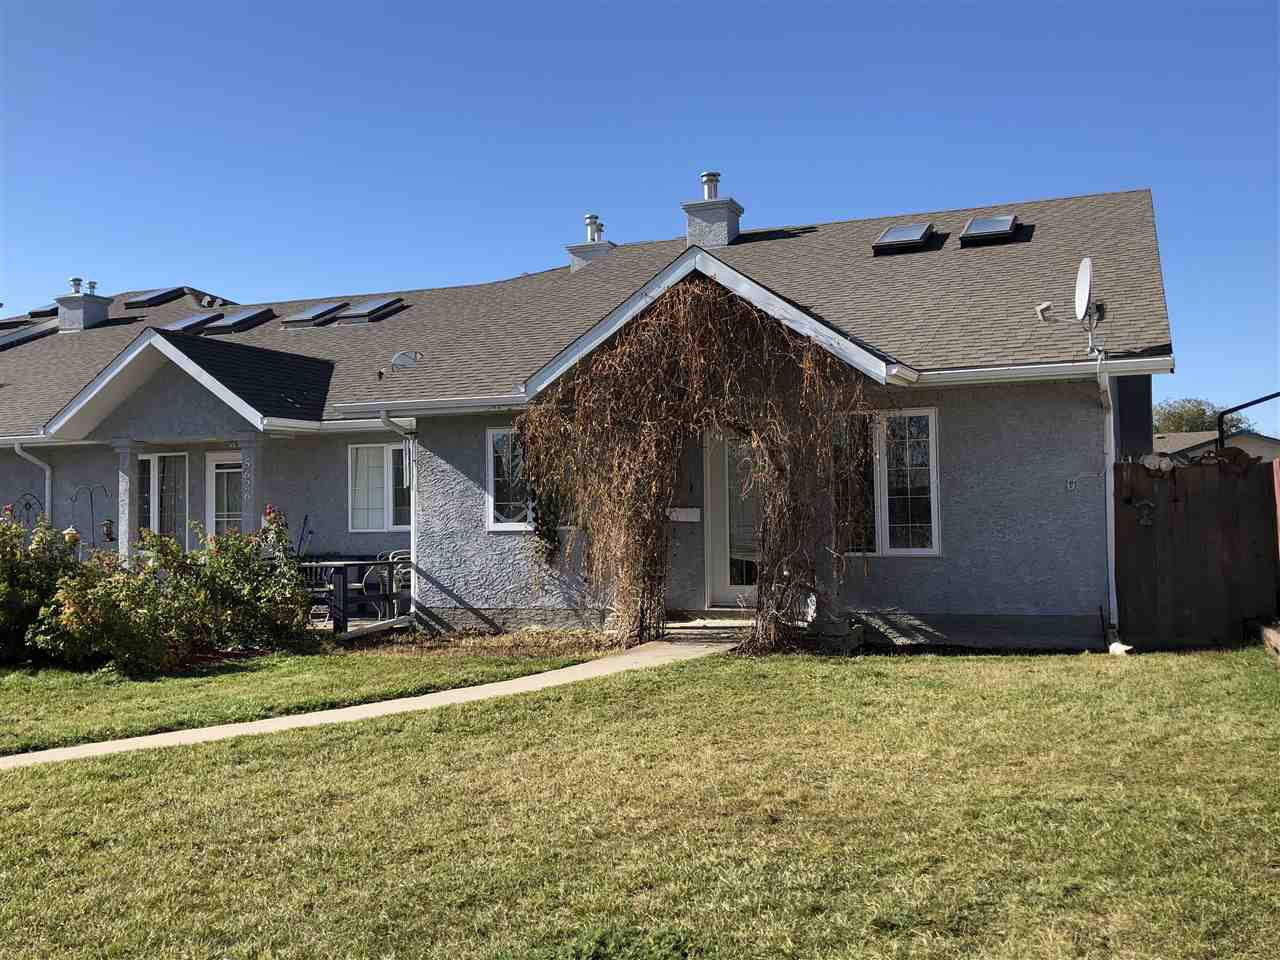 Main Photo: 5628 52 Street: Wetaskiwin Attached Home for sale : MLS®# E4142312